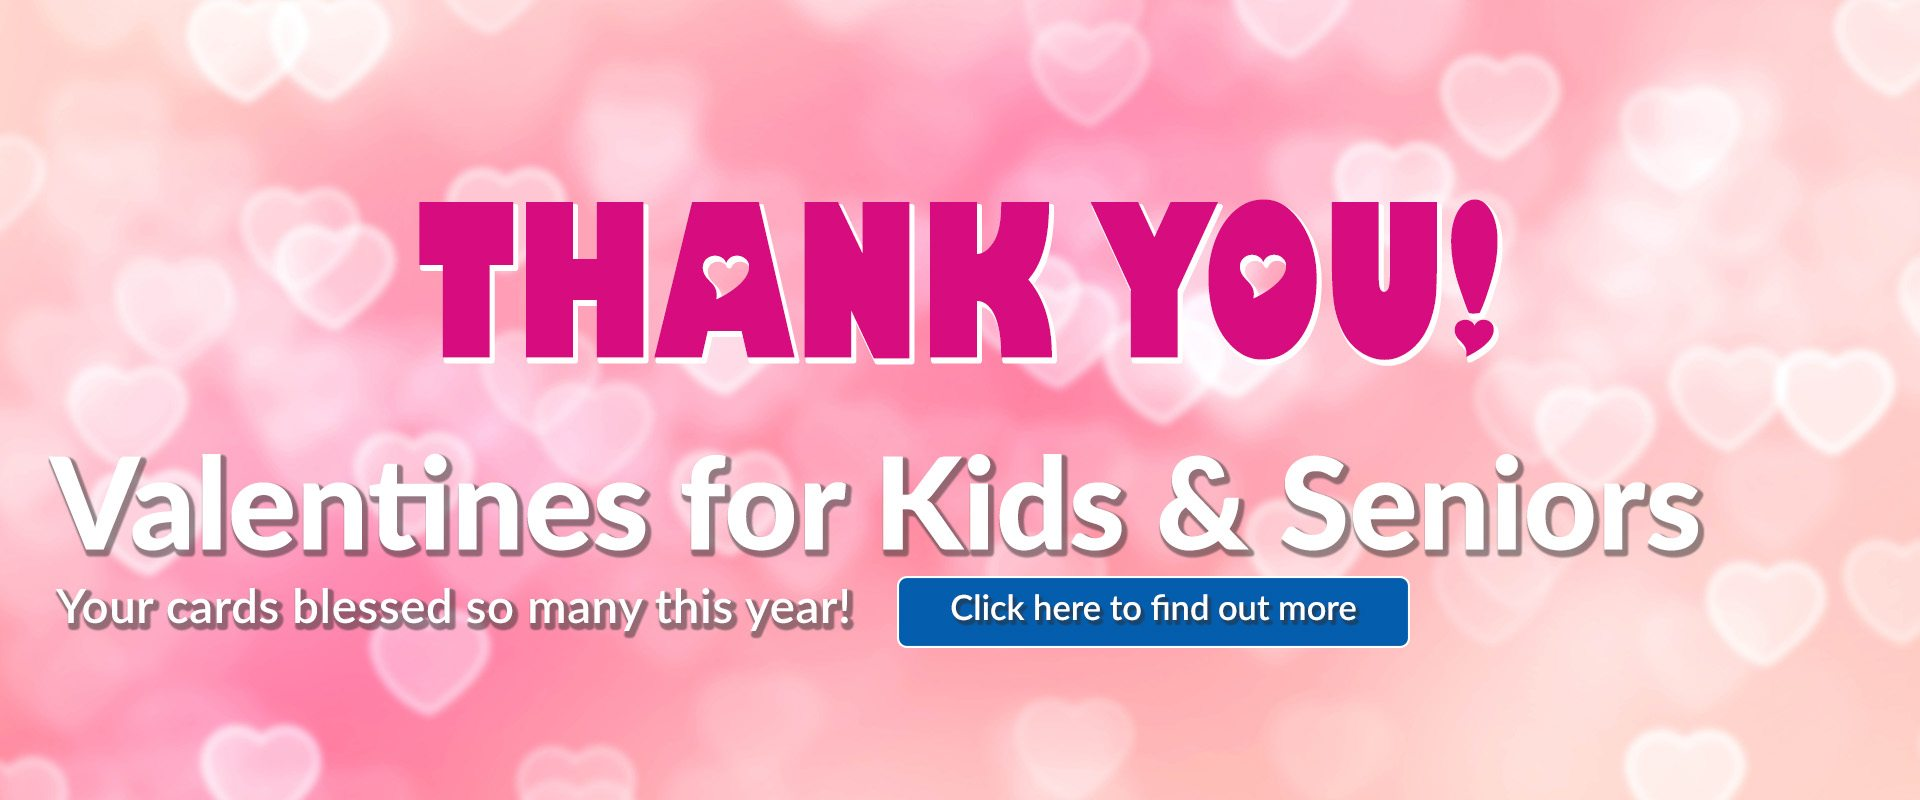 2018 Valentines Web Graphic Thank You – KGLY